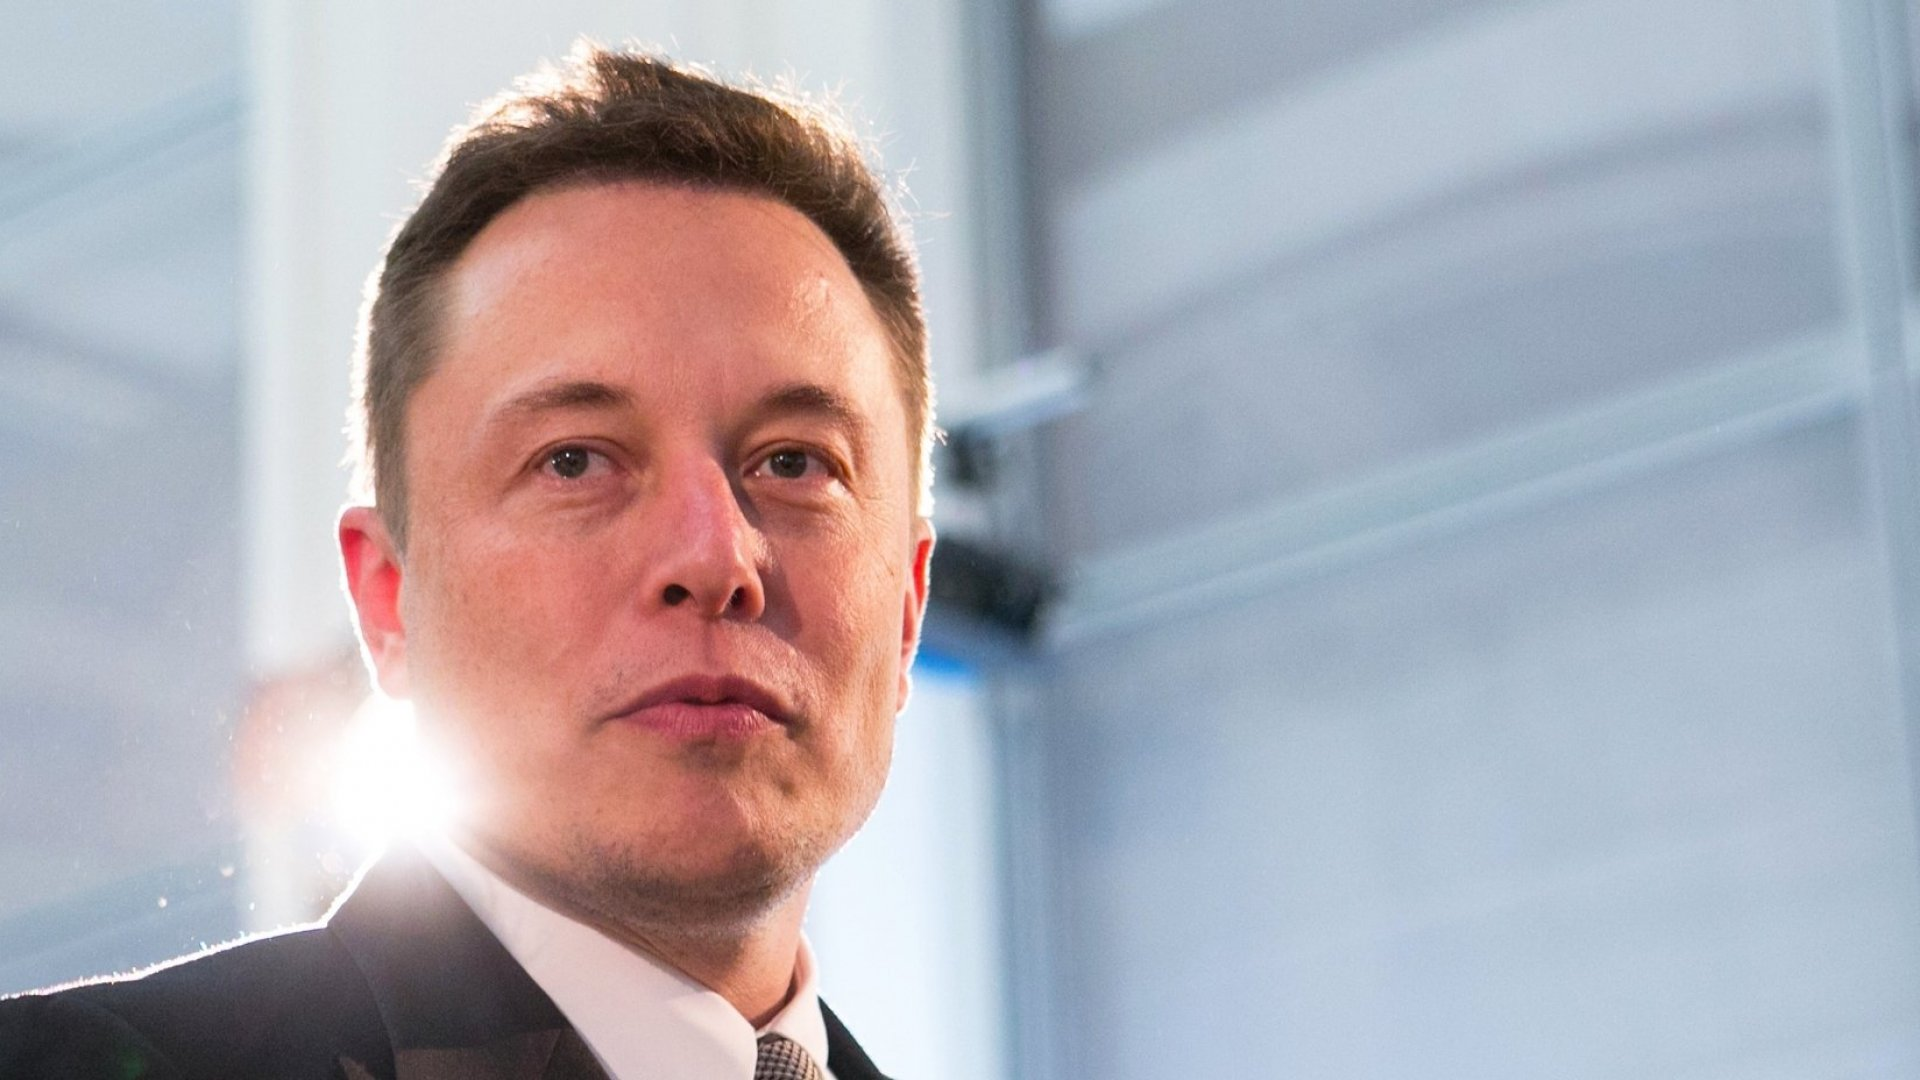 Elon Musk Quietly Revealed a Brilliant Plan That Could Change the Auto Industry | Inc.com